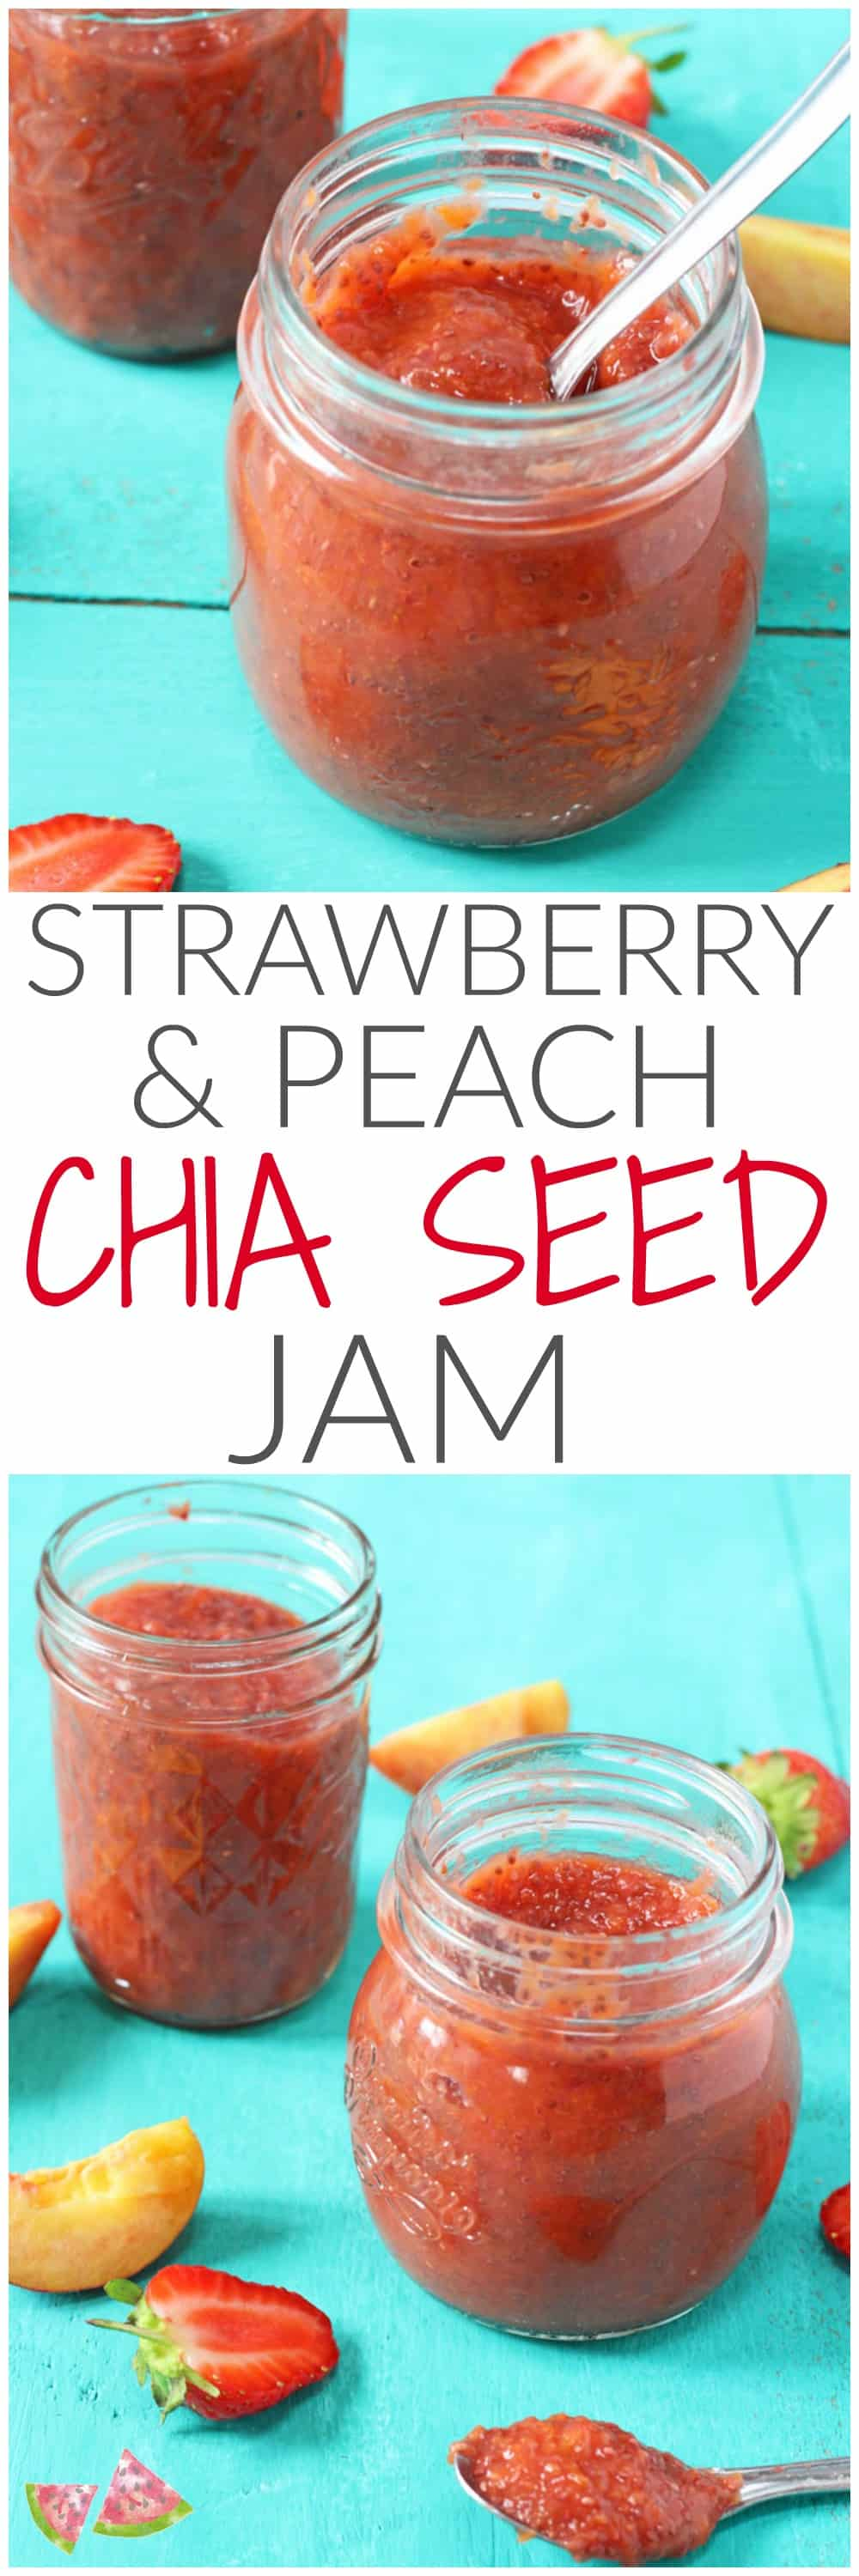 Delicious, super easy to make and refined sugar free, kids will love this healthier Strawberry & Peach Chia Seed Jam recipe!